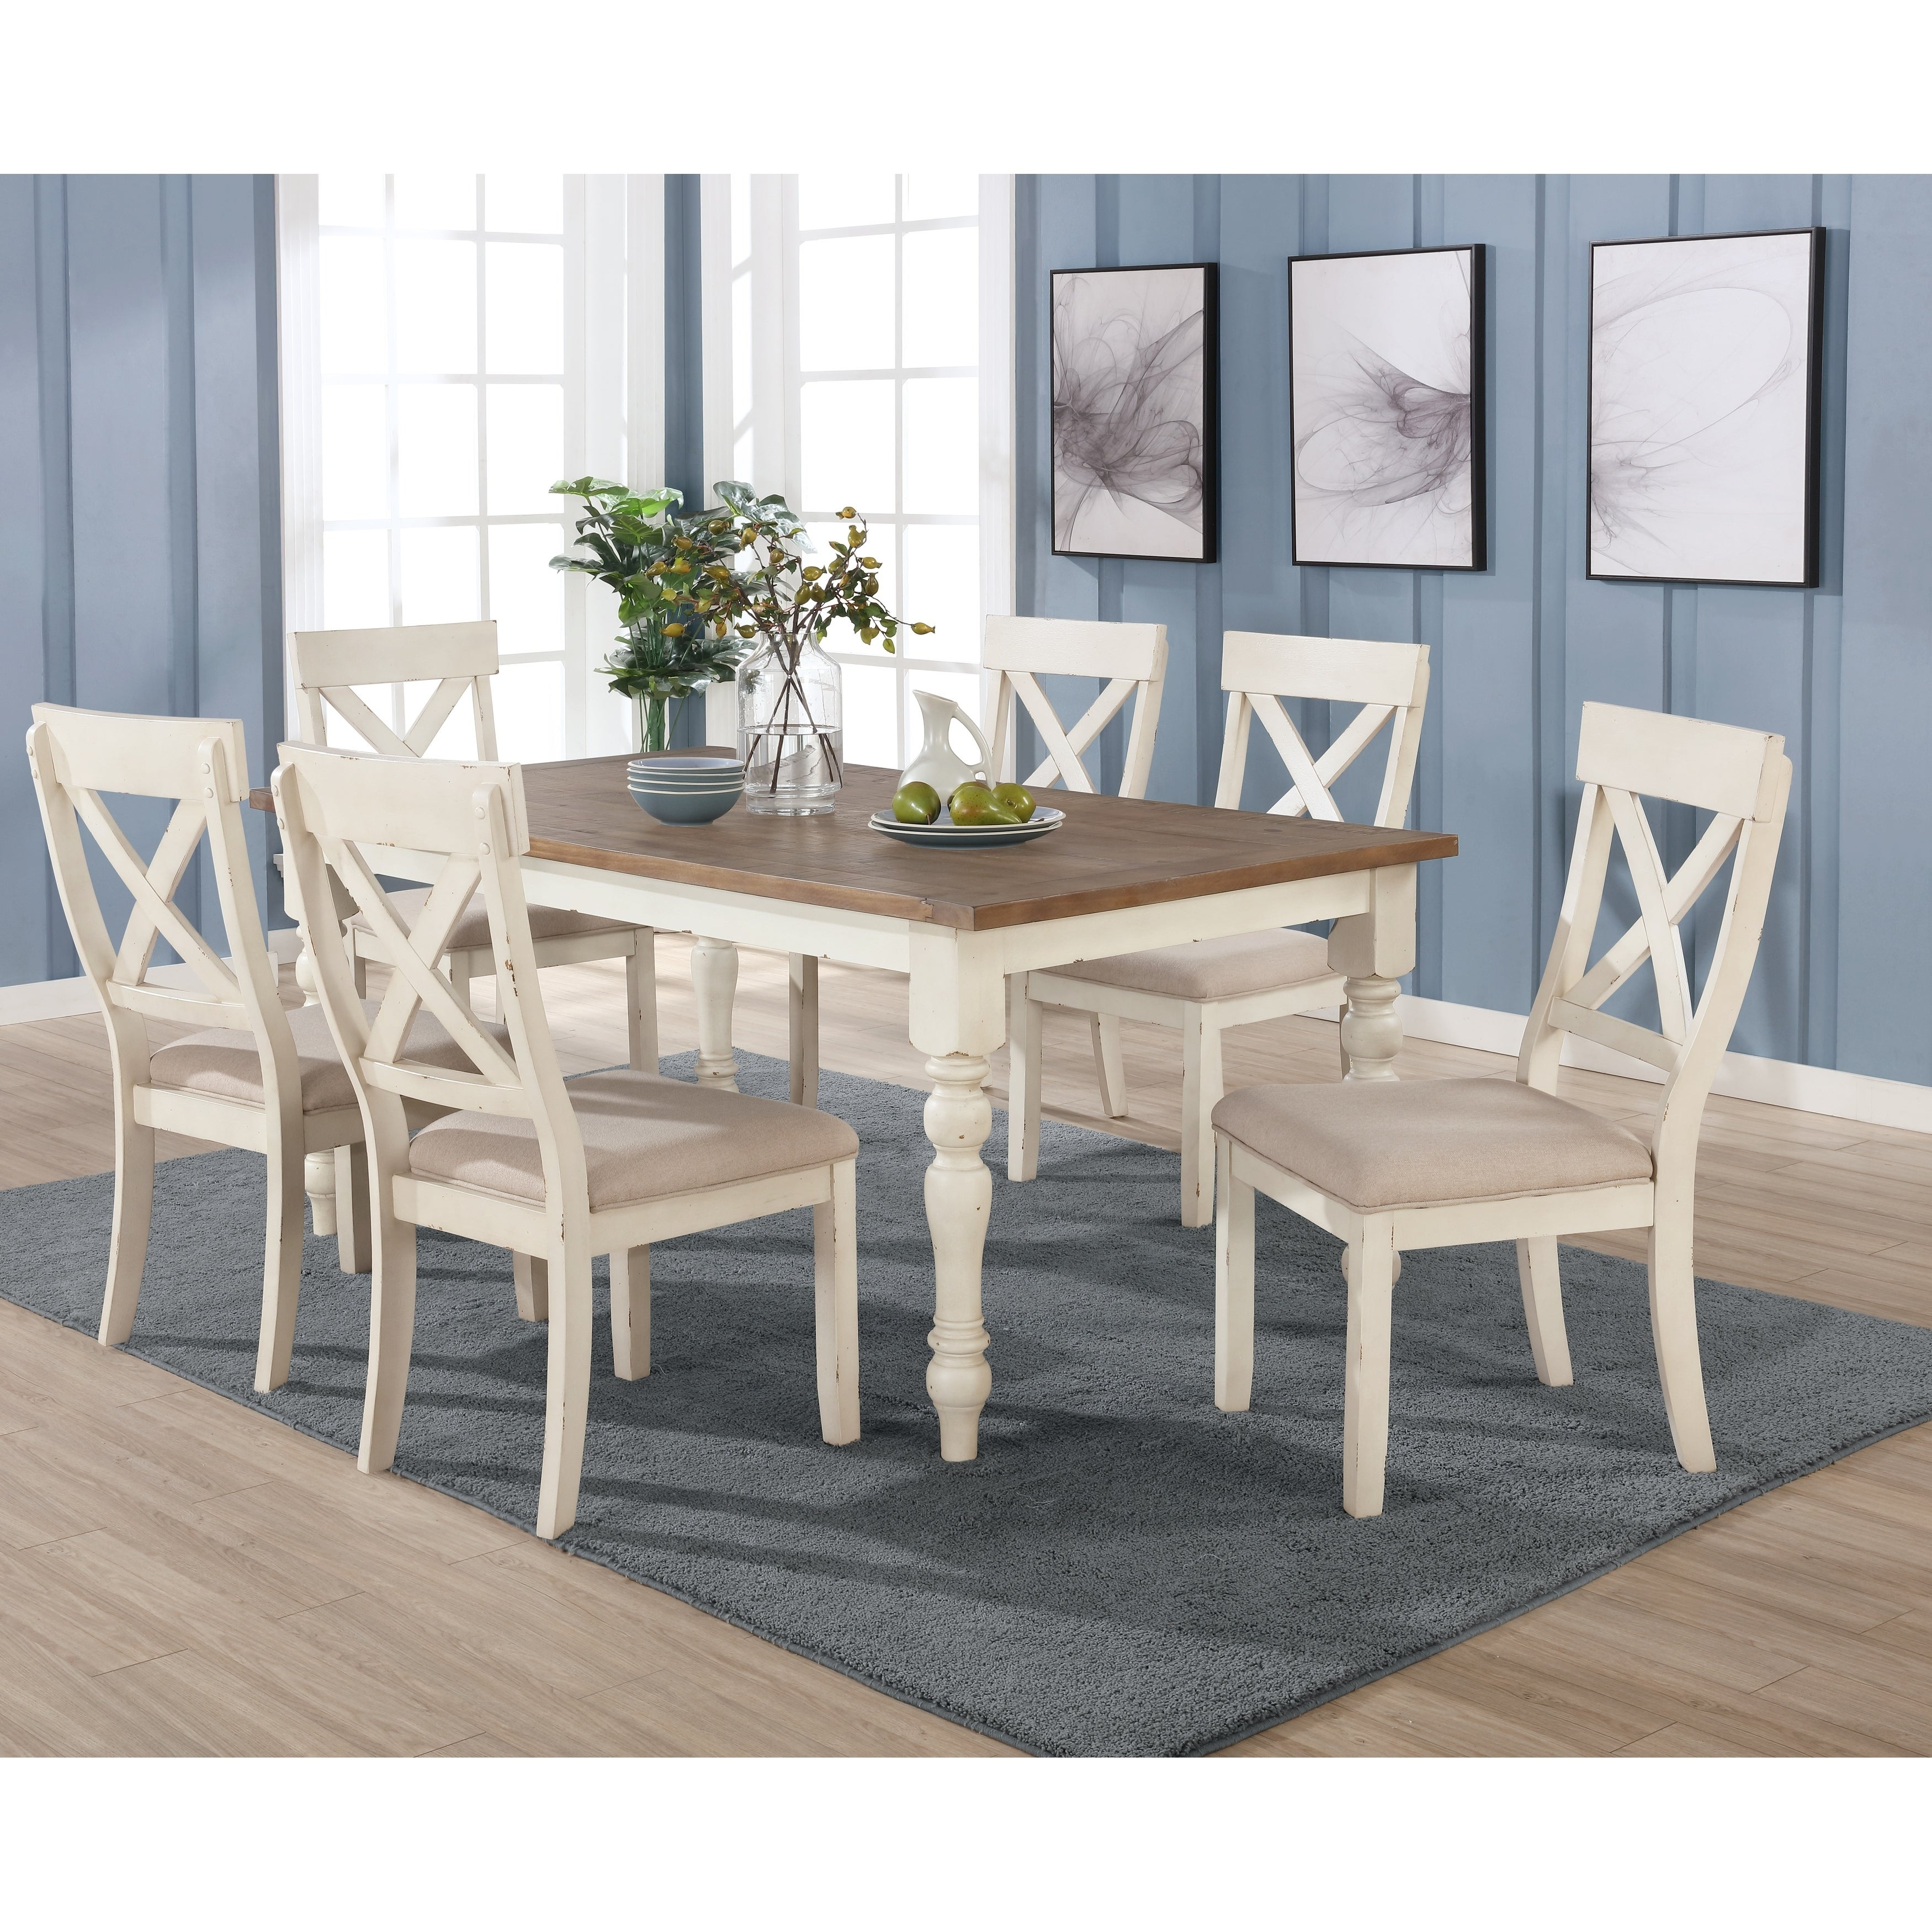 Prato 9 piece Dining Table Set With Cross Back Chairs, Antique White and  Distressed Oak